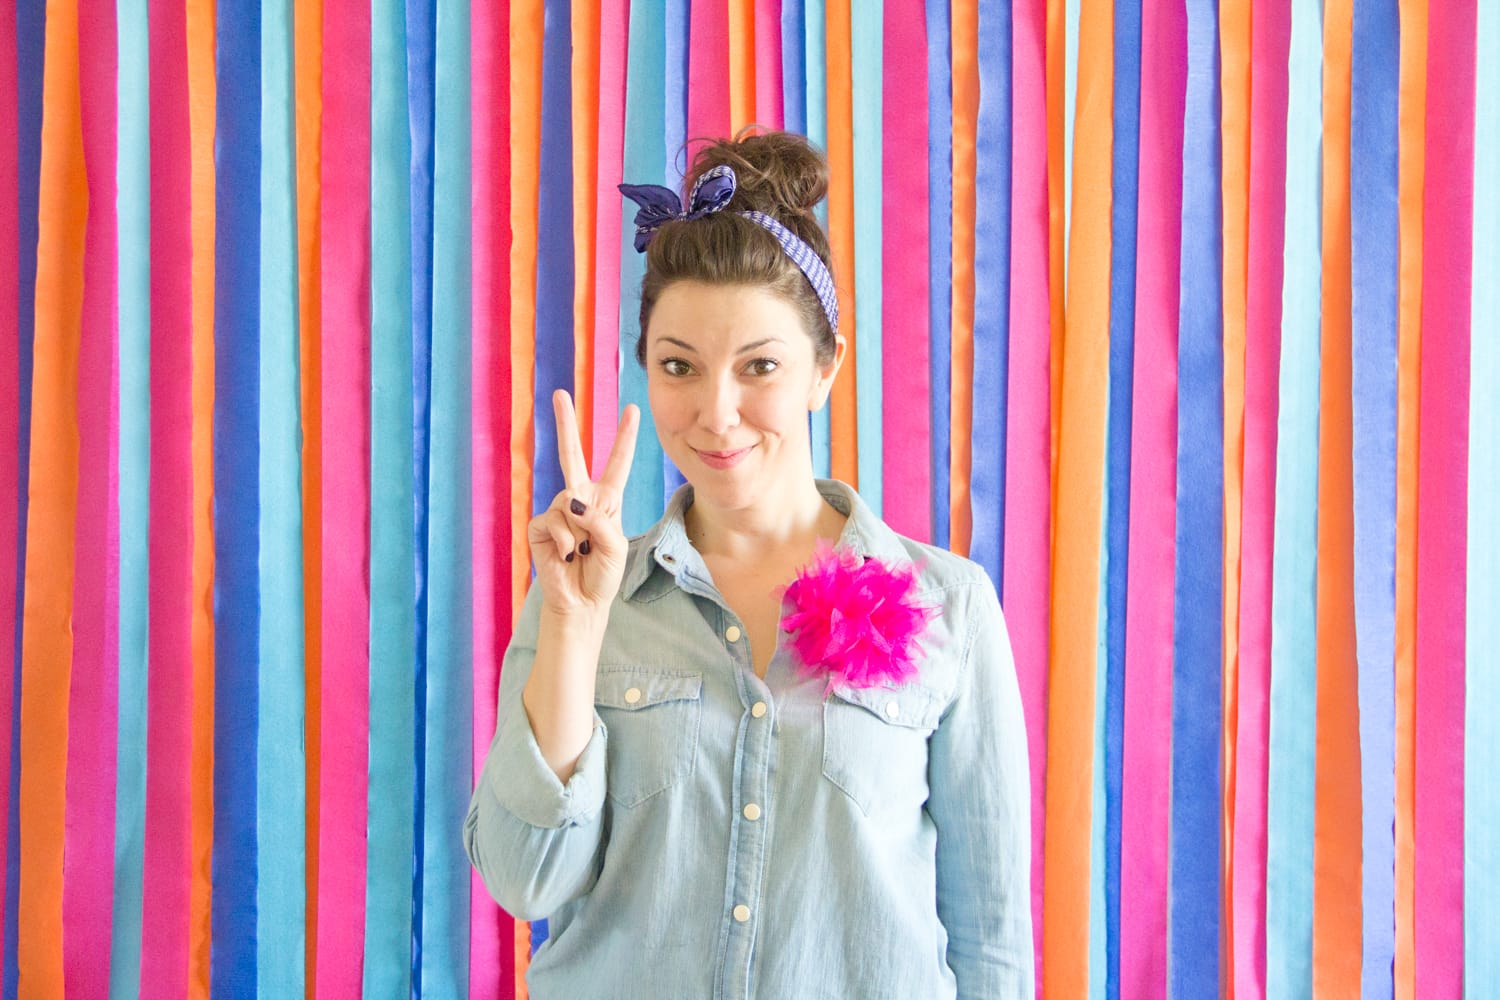 How to make a photo backdrop out of streamers